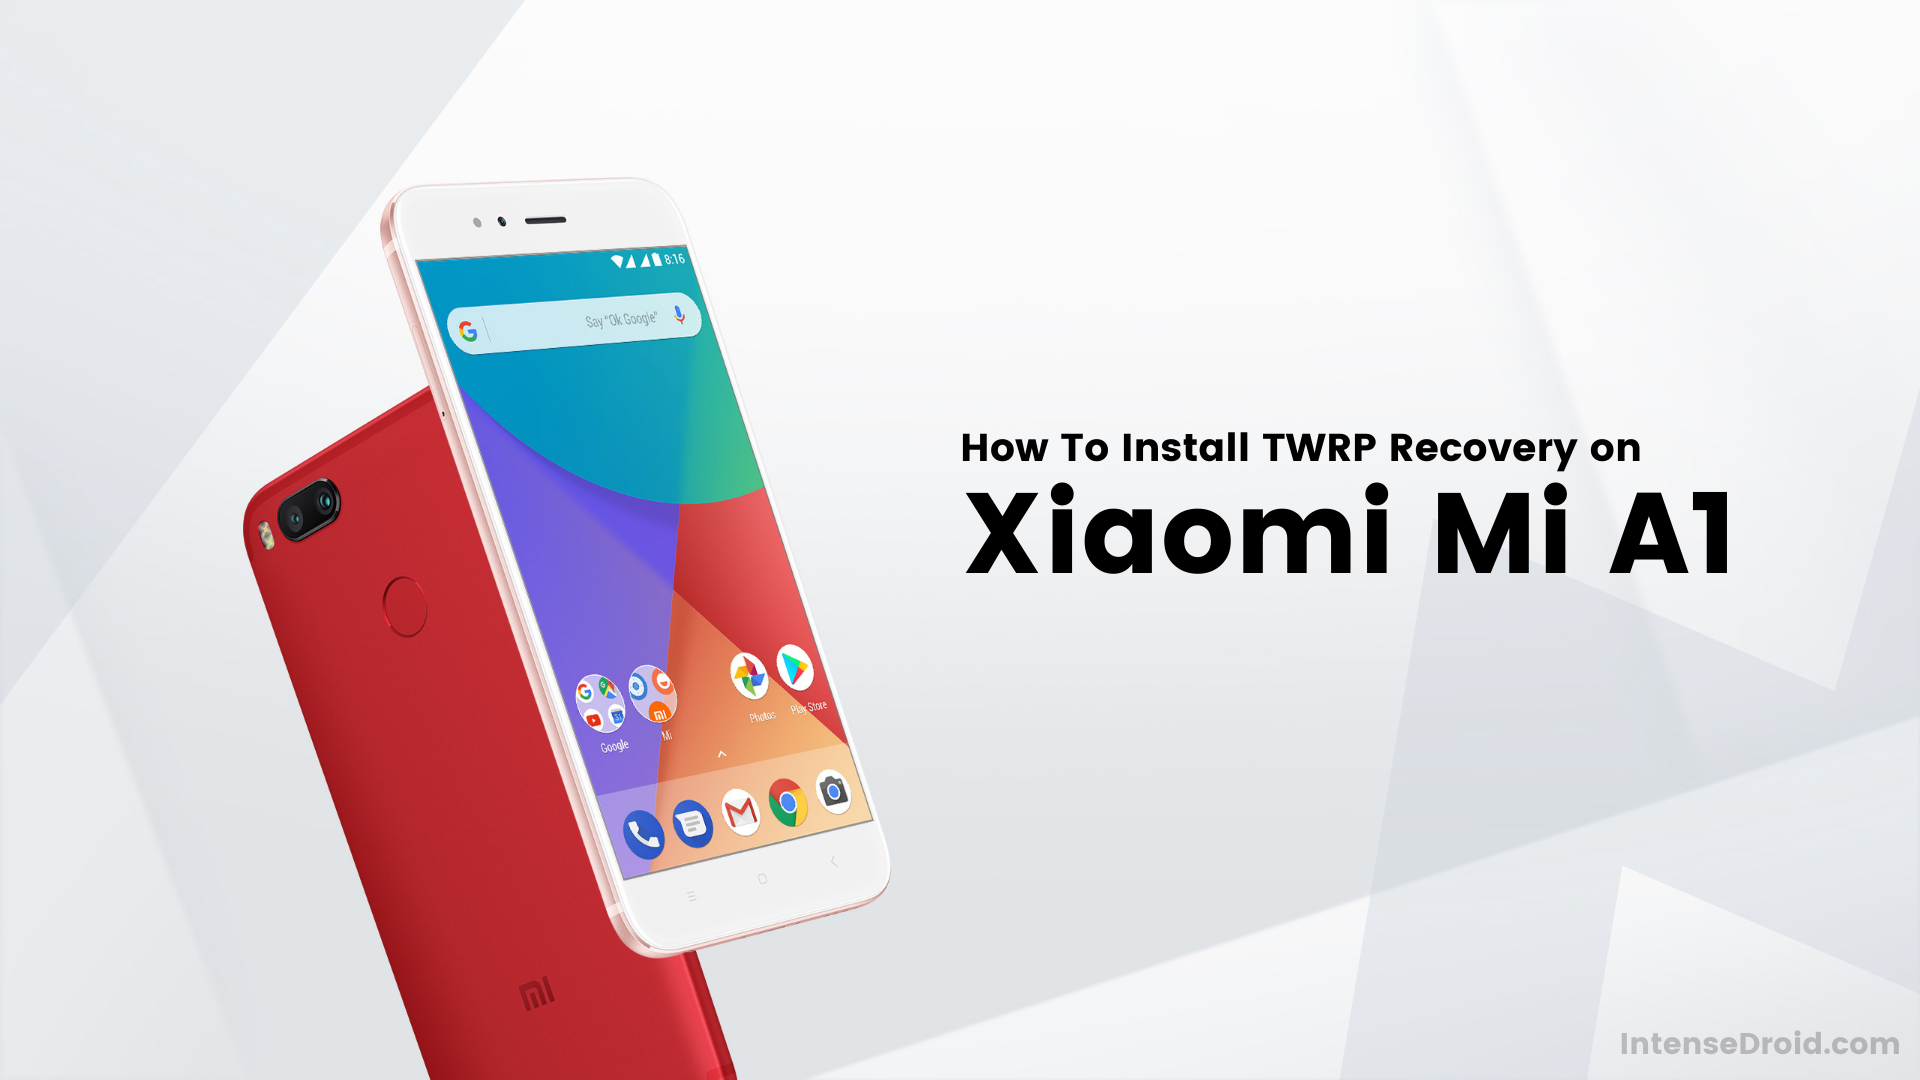 How To Install TWRP Recovery on Xiaomi Mi A1 (Tissot)